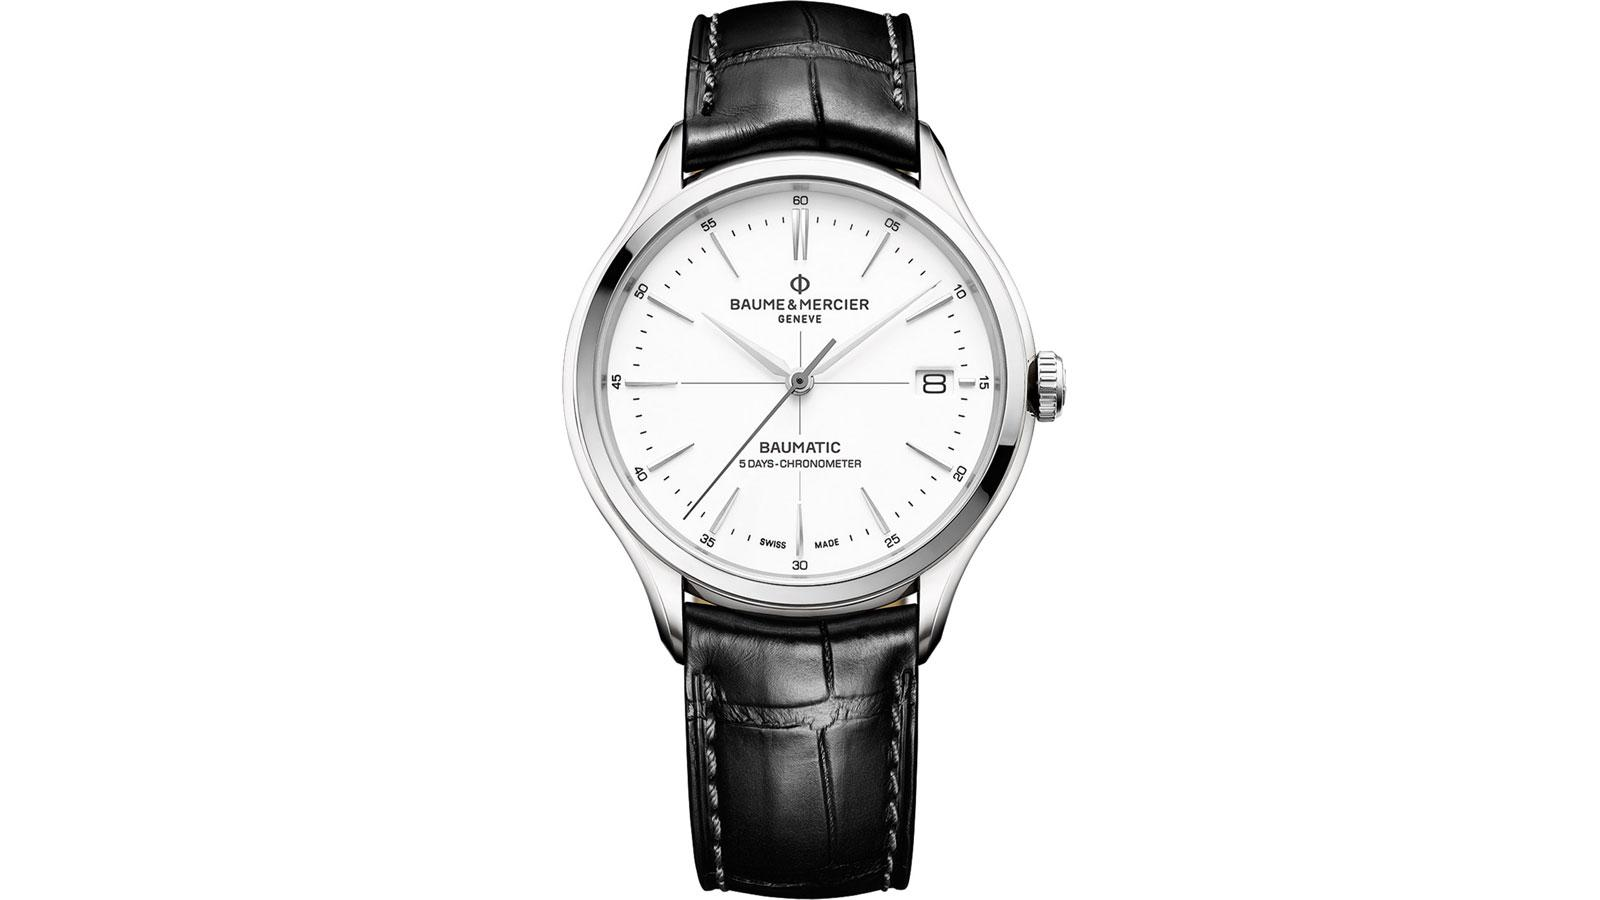 Baume & Mercier Baumatic collection